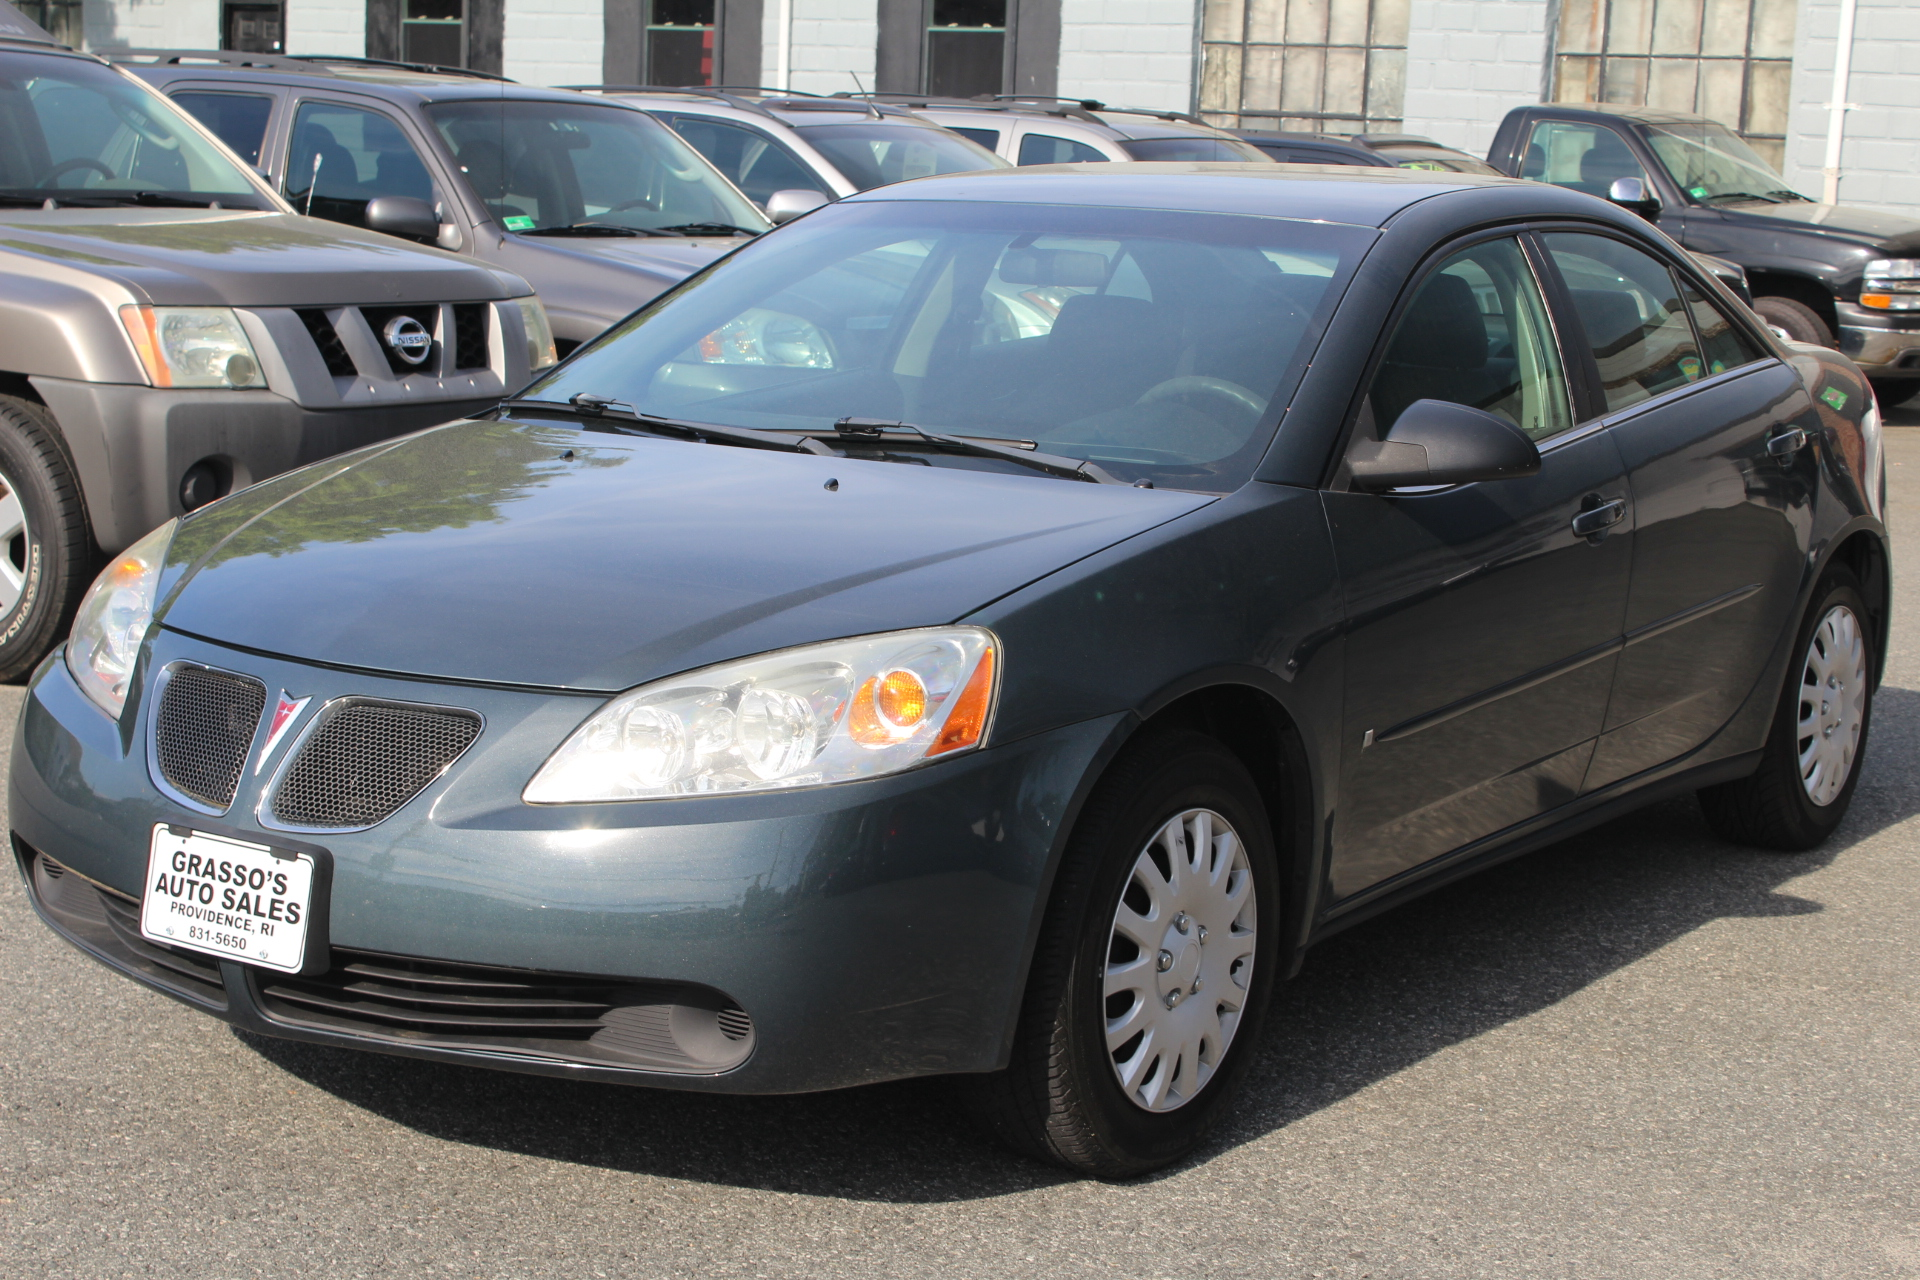 2006 Pontiac G6 4dr Sdn w1SV NO ACCIDENTS  3 OWNERS  NON SMOKER  COMPLETELY SERVICED WITH A 2